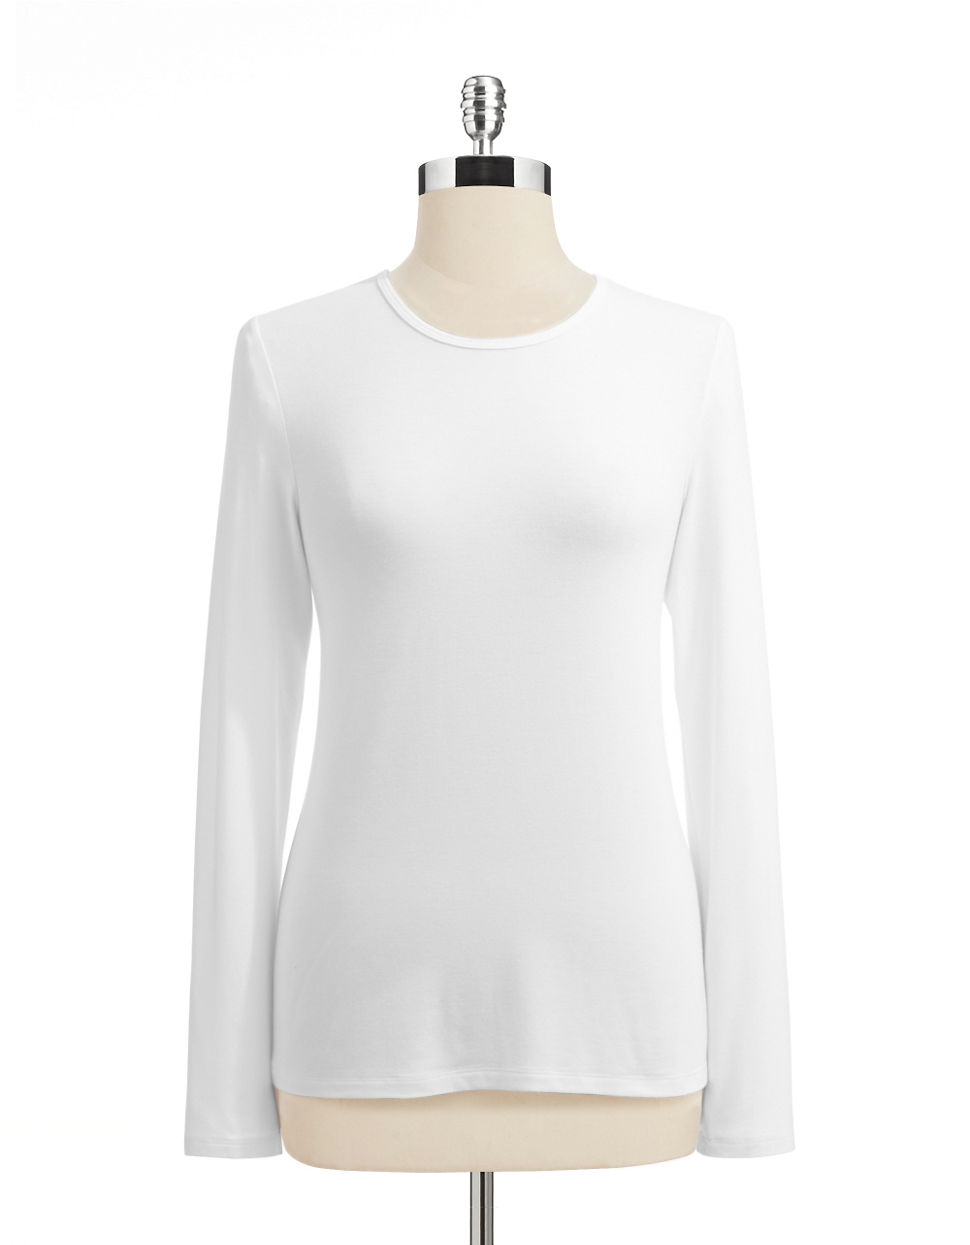 Lord  taylor LongSleeved Top white XLarge